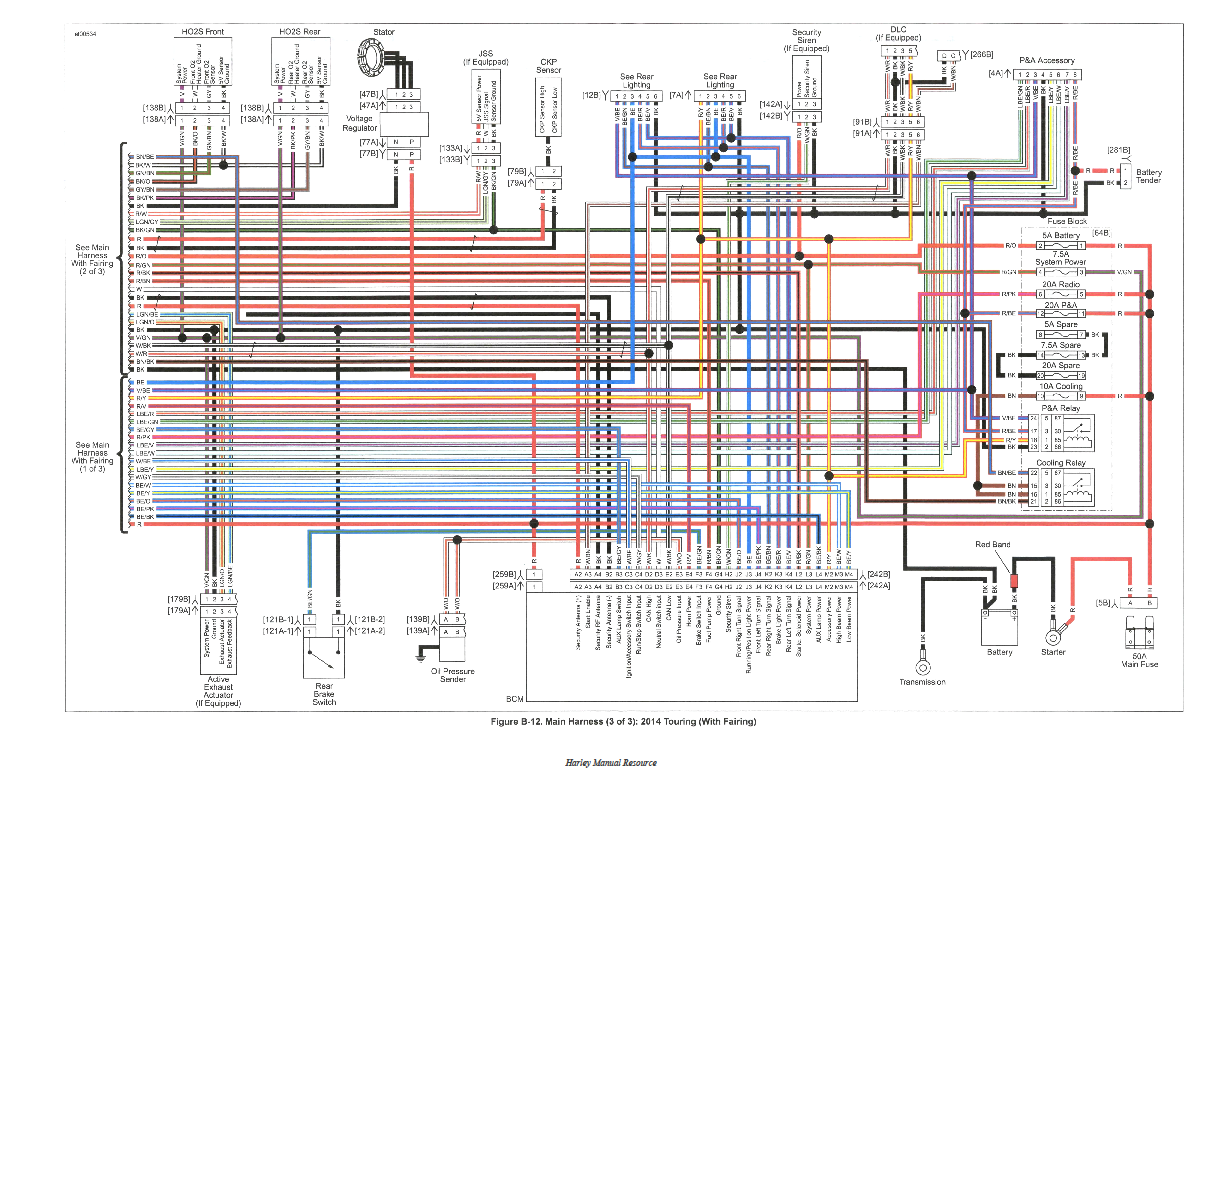 Harley Wiring Harness Diagram - Wiring Diagram & Cable ... on